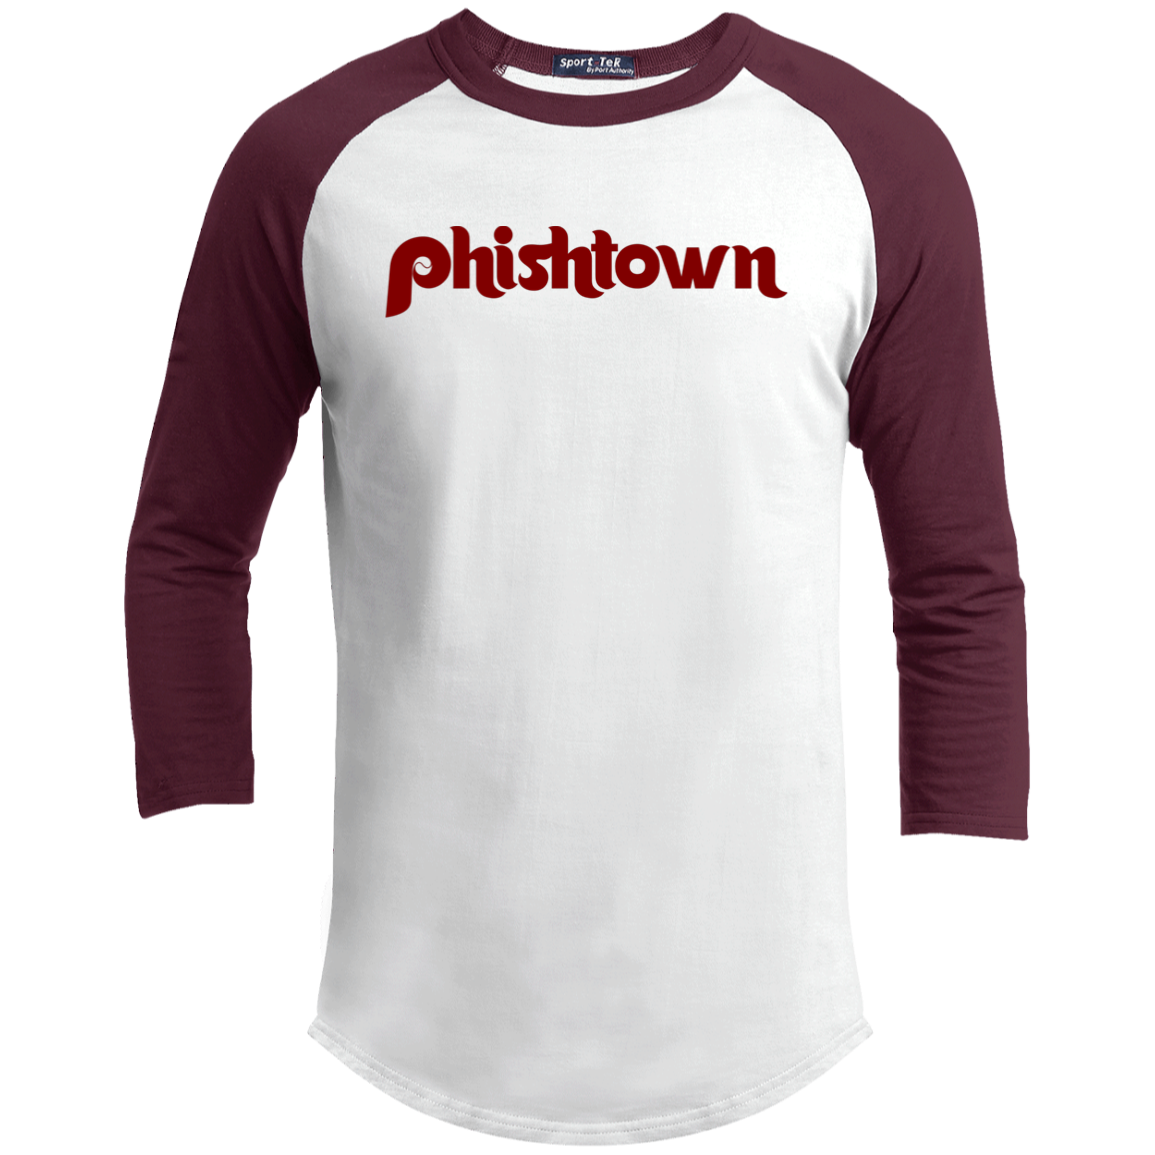 Fishtown Philadelphia Youth Sporty T-Shirt